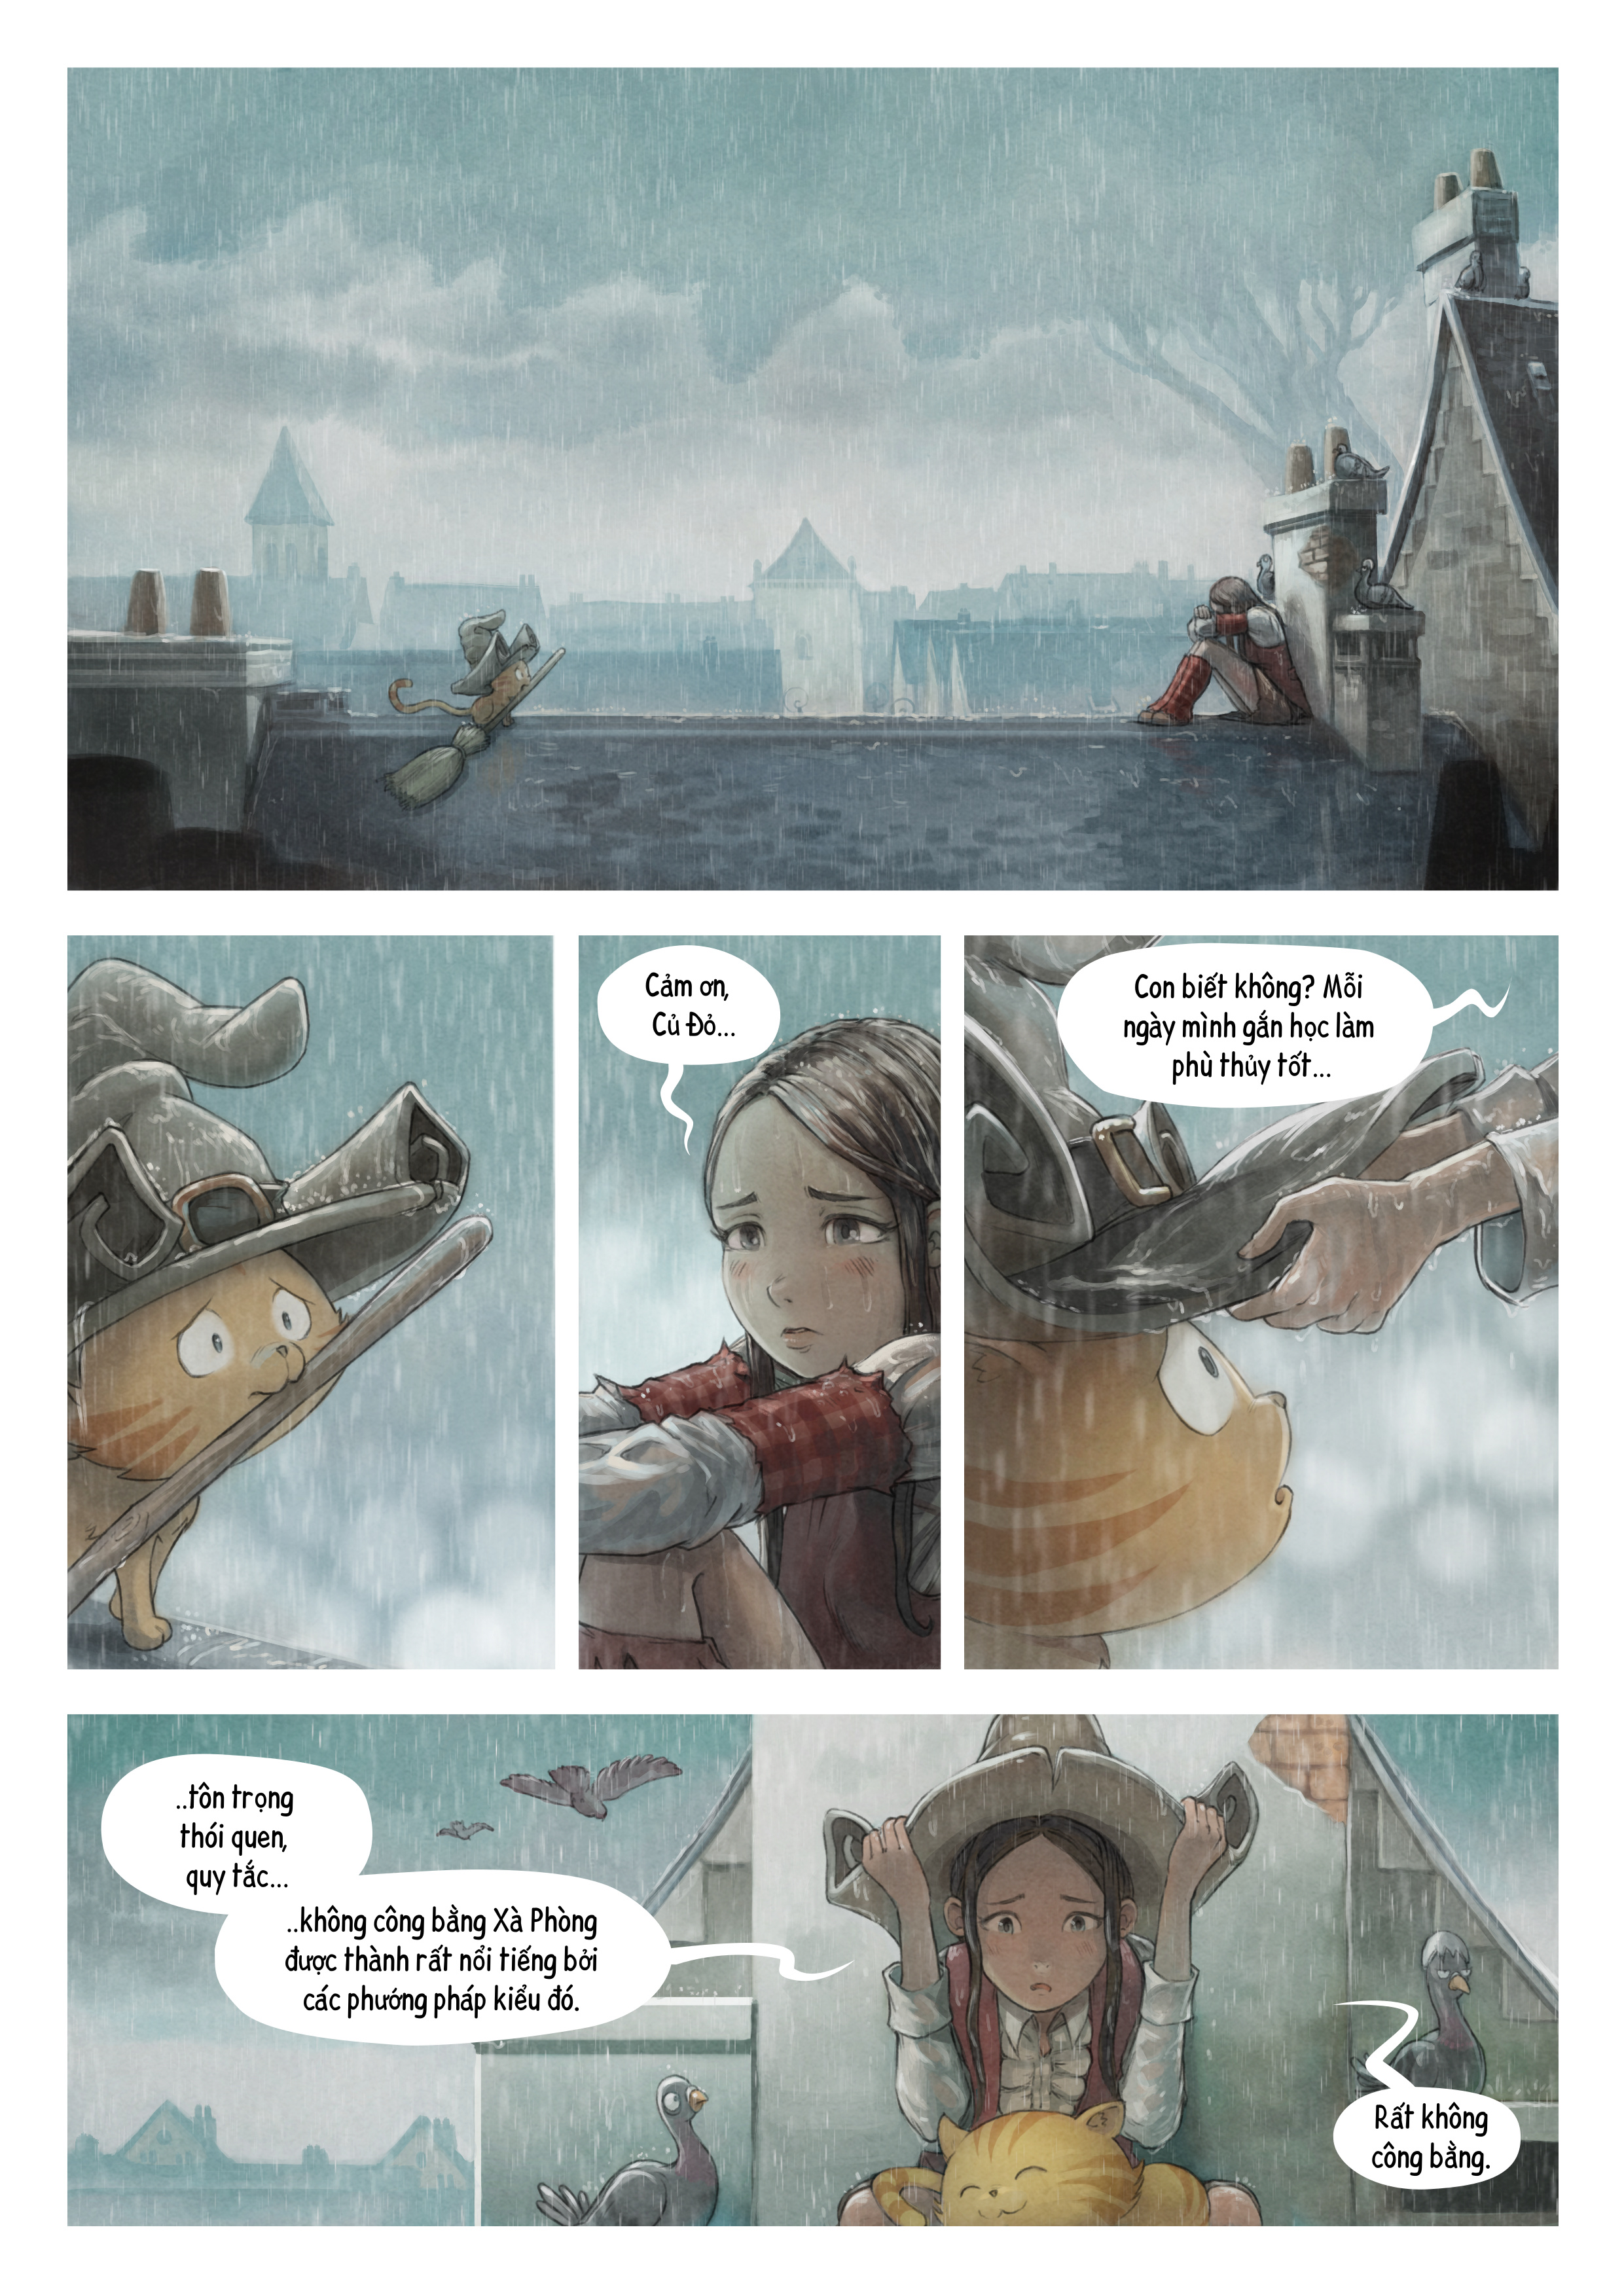 A webcomic page of Pepper&Carrot, Tập 23 [vi], trang 2